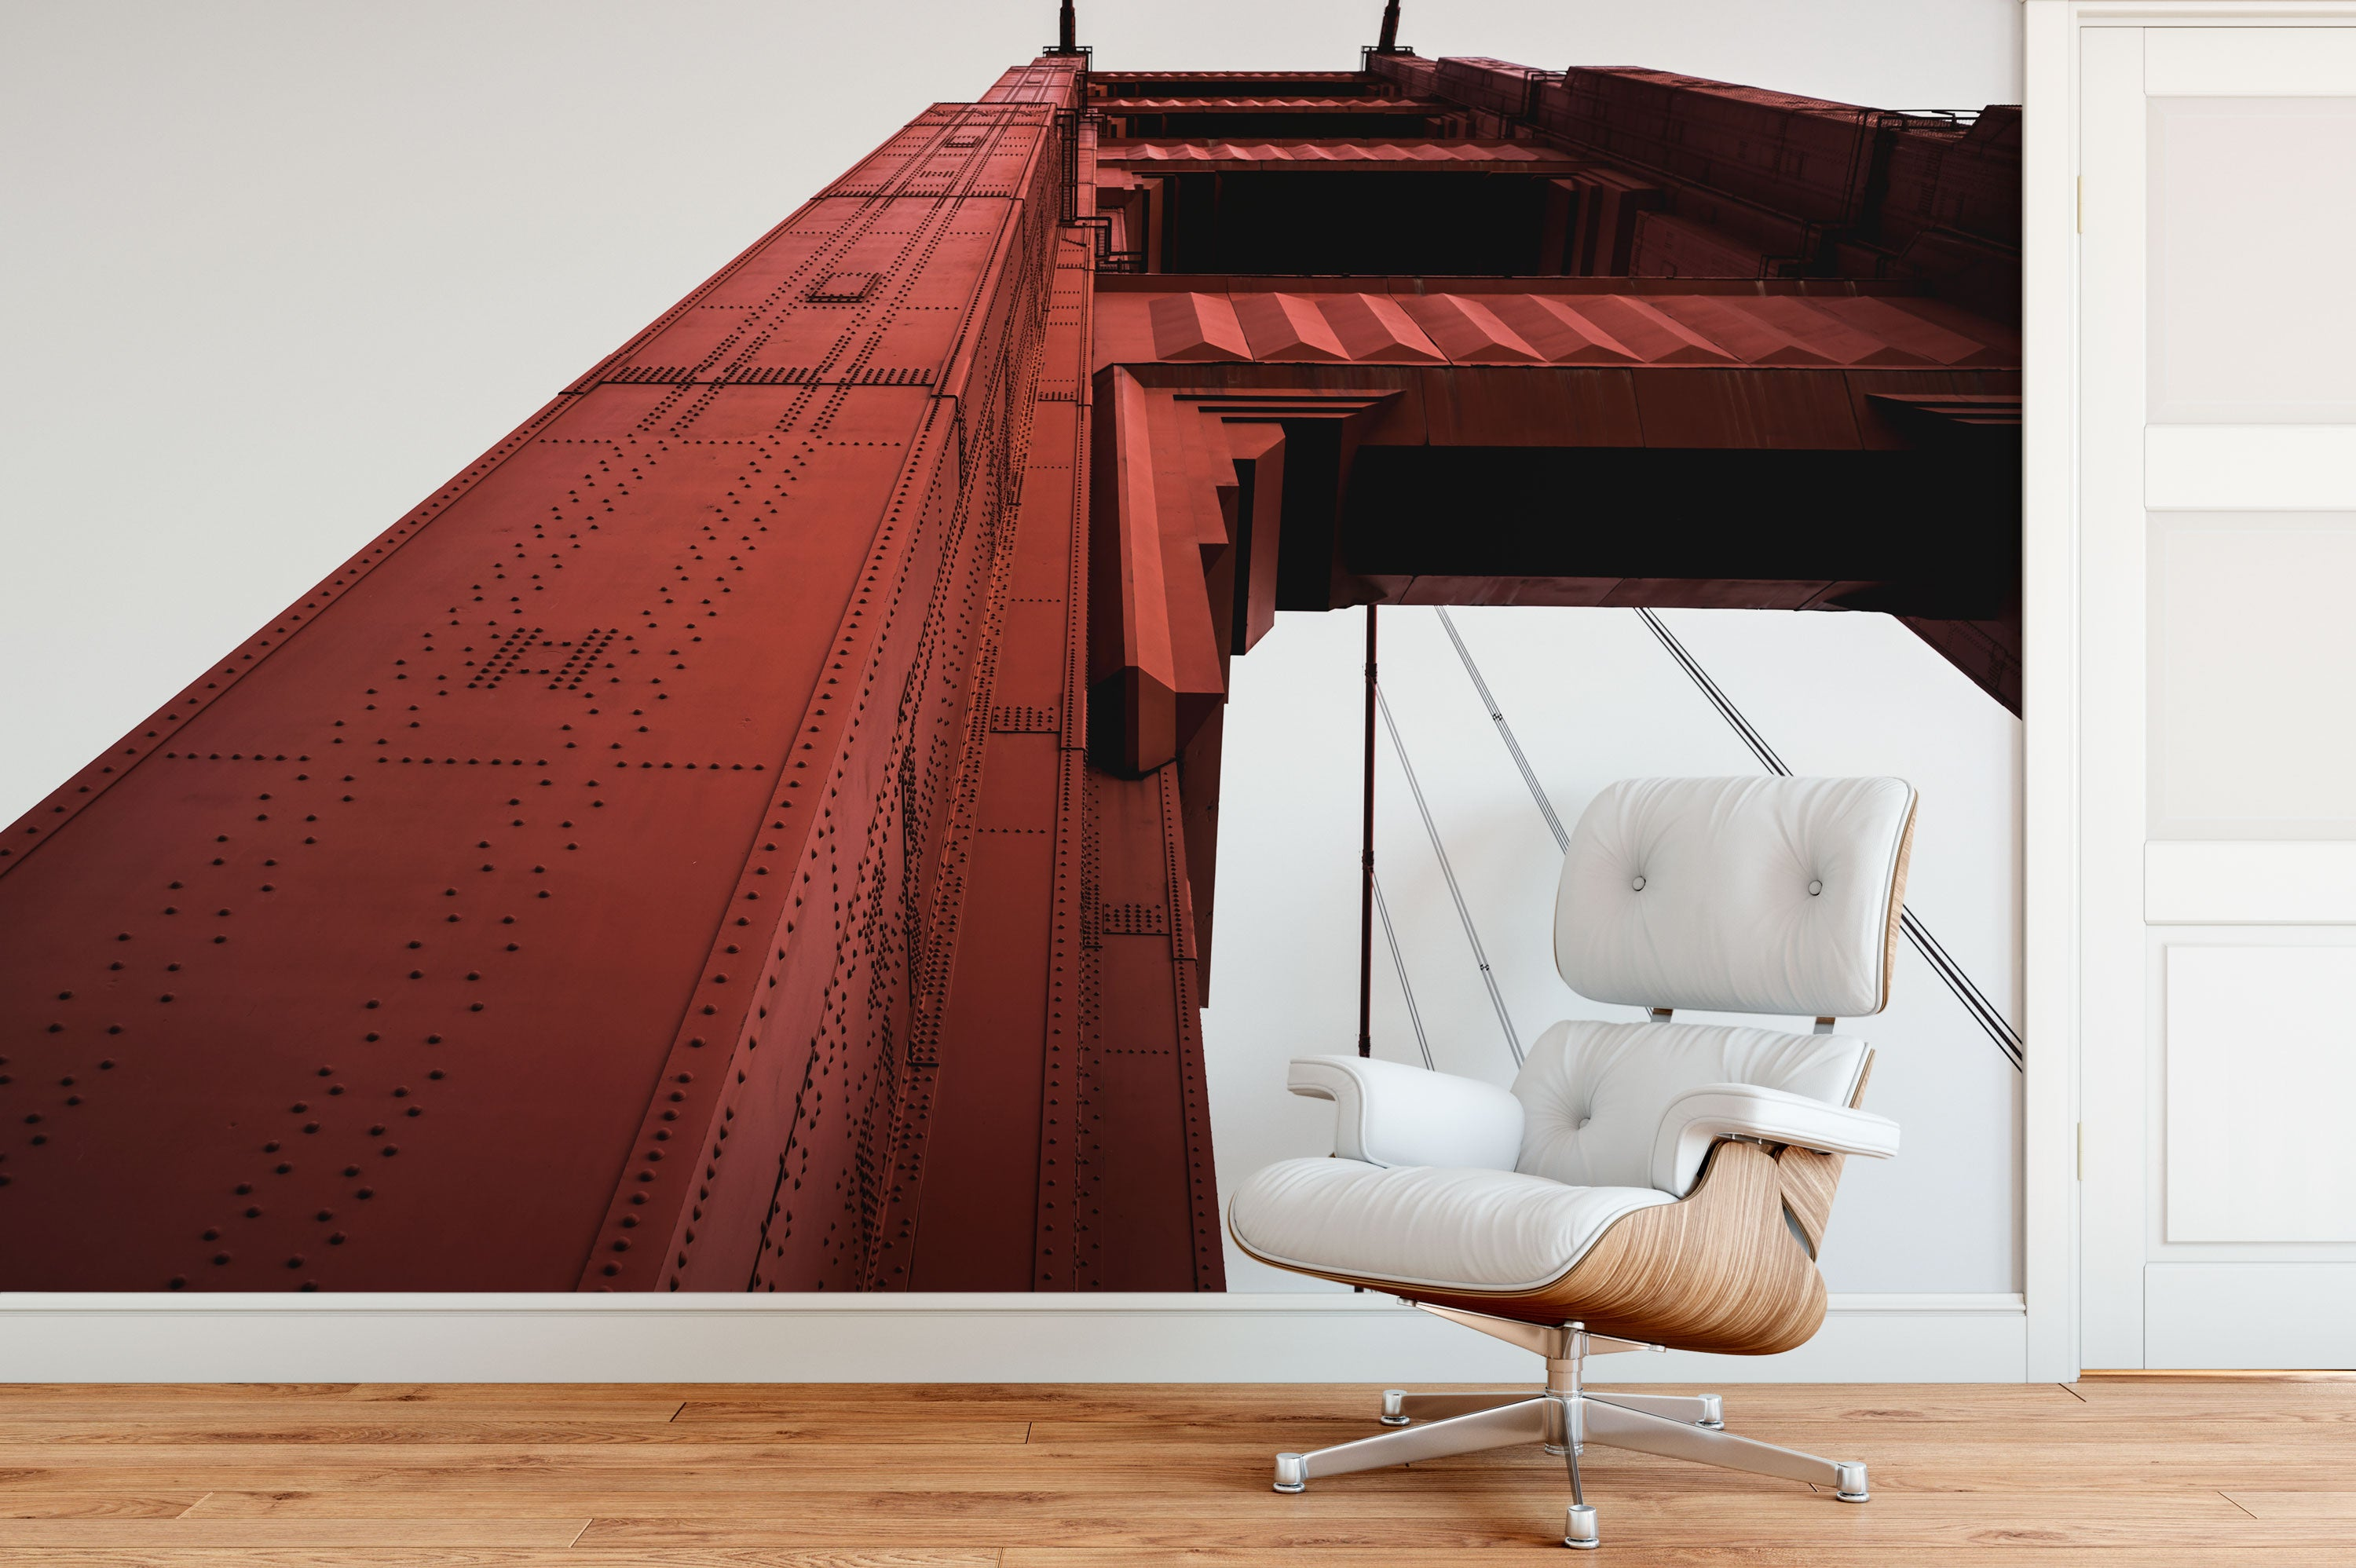 Golden Gate Bridge Steel Chair